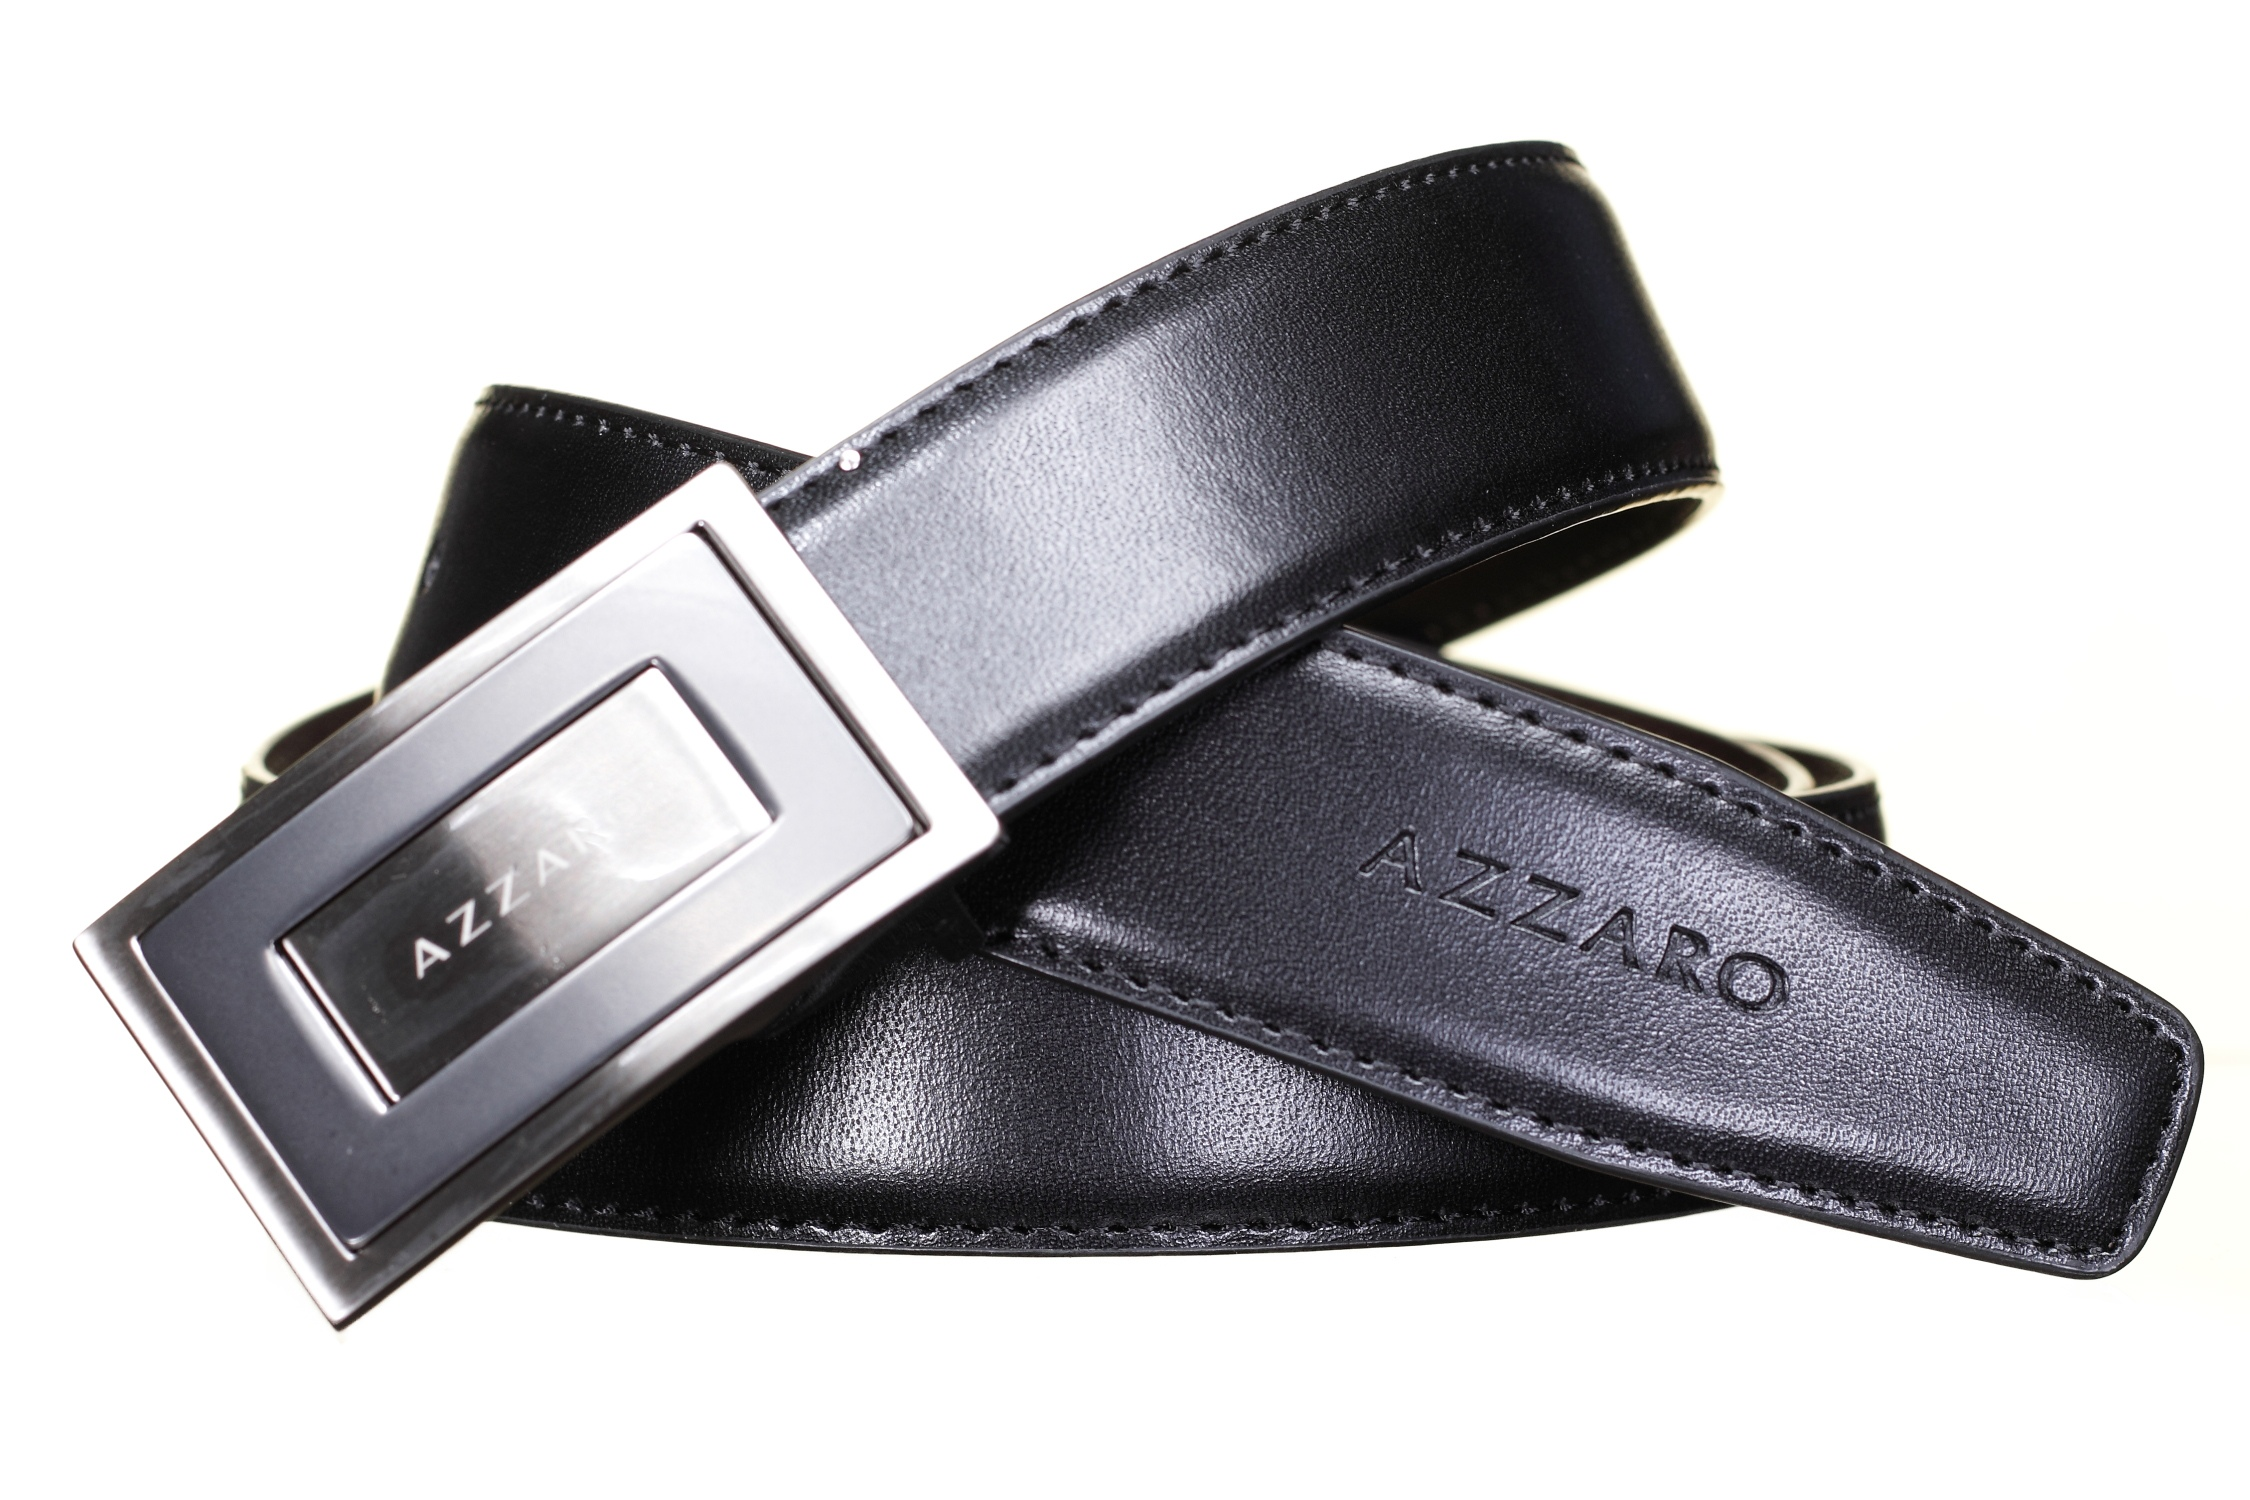 https://www.leadermode.com/90276/azzaro-21204-reversible-noir-marron.jpg